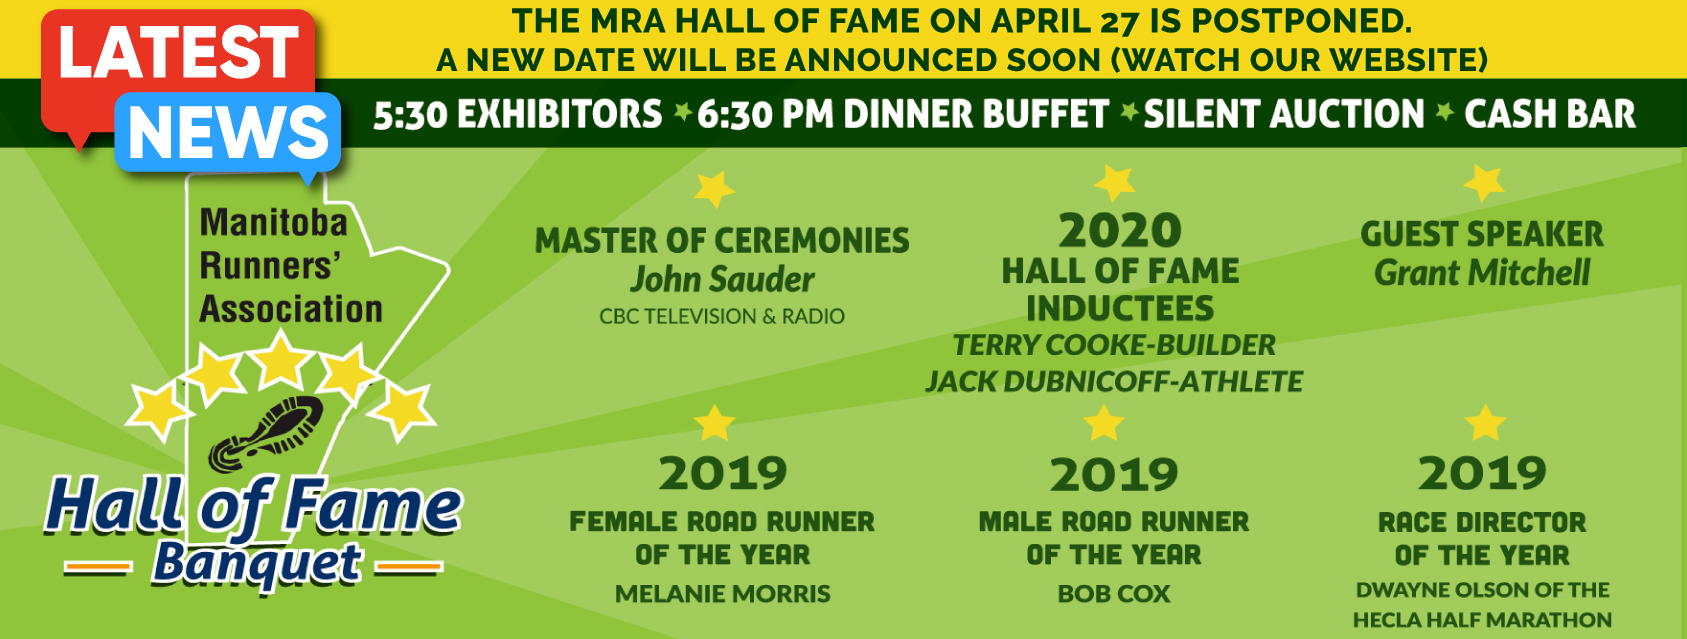 2020 MRA Hall of Fame Banquet - **POSTPONED - DATE TBA**